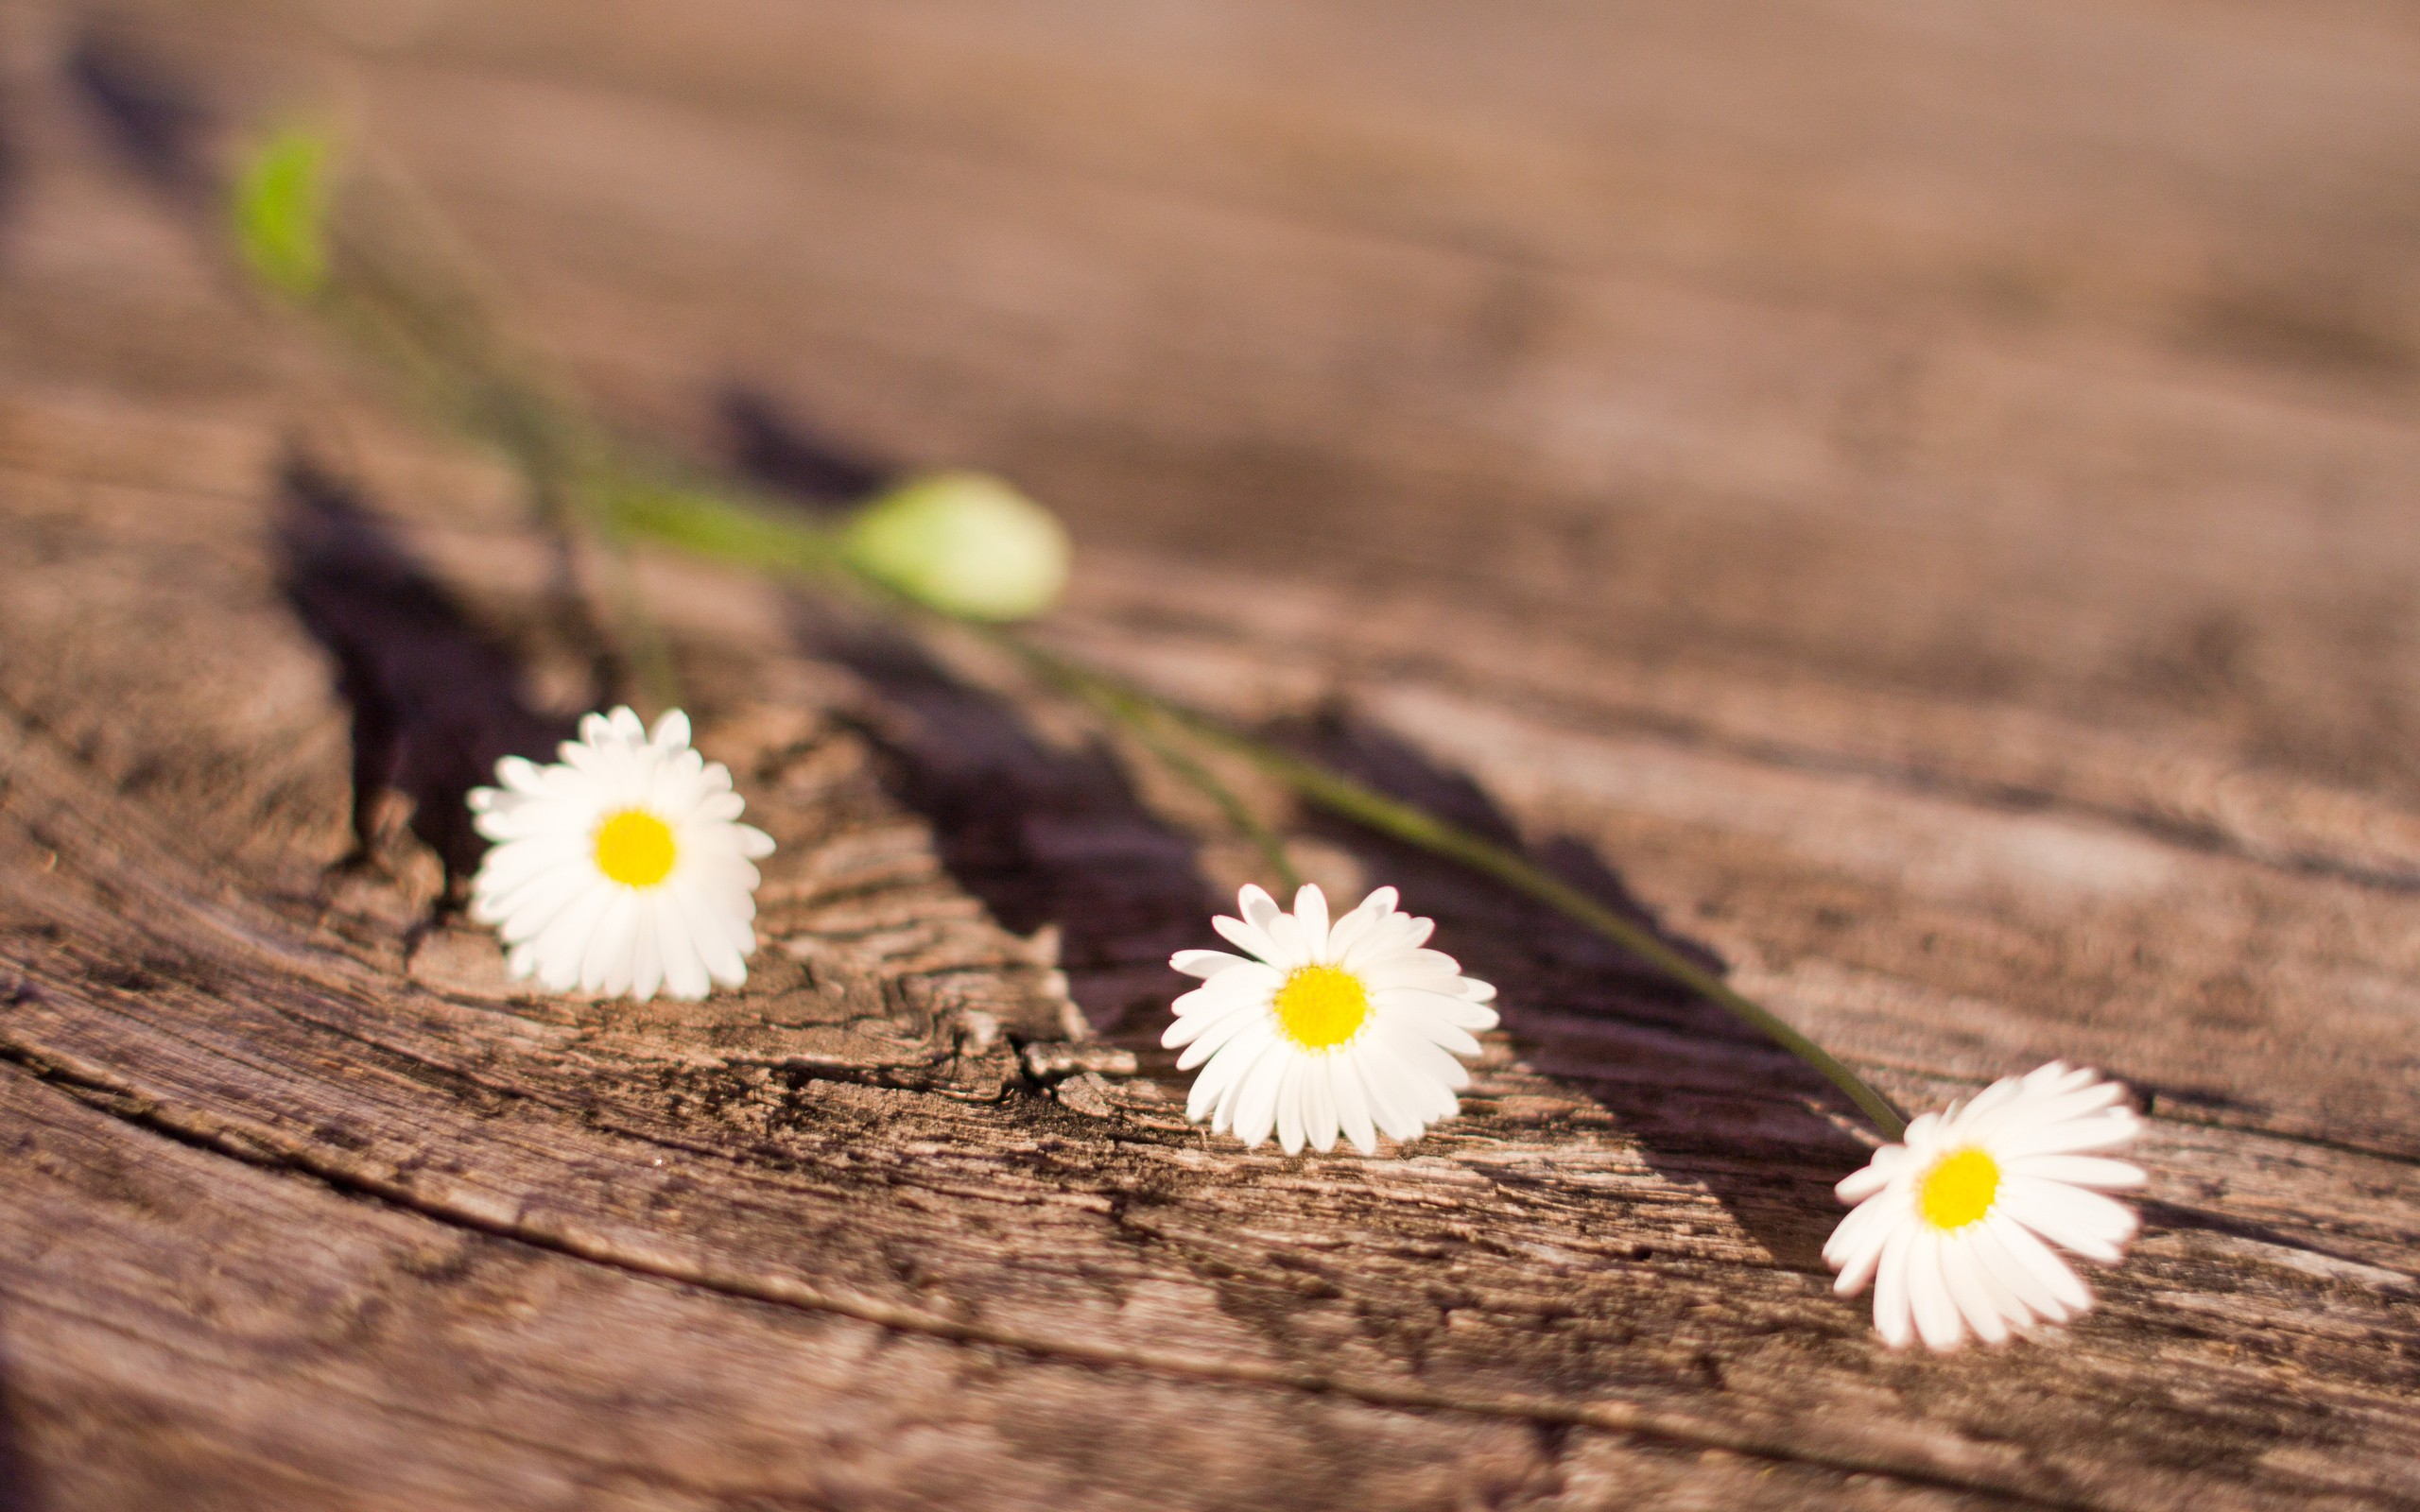 flowers depth of field white flowers wooden floor